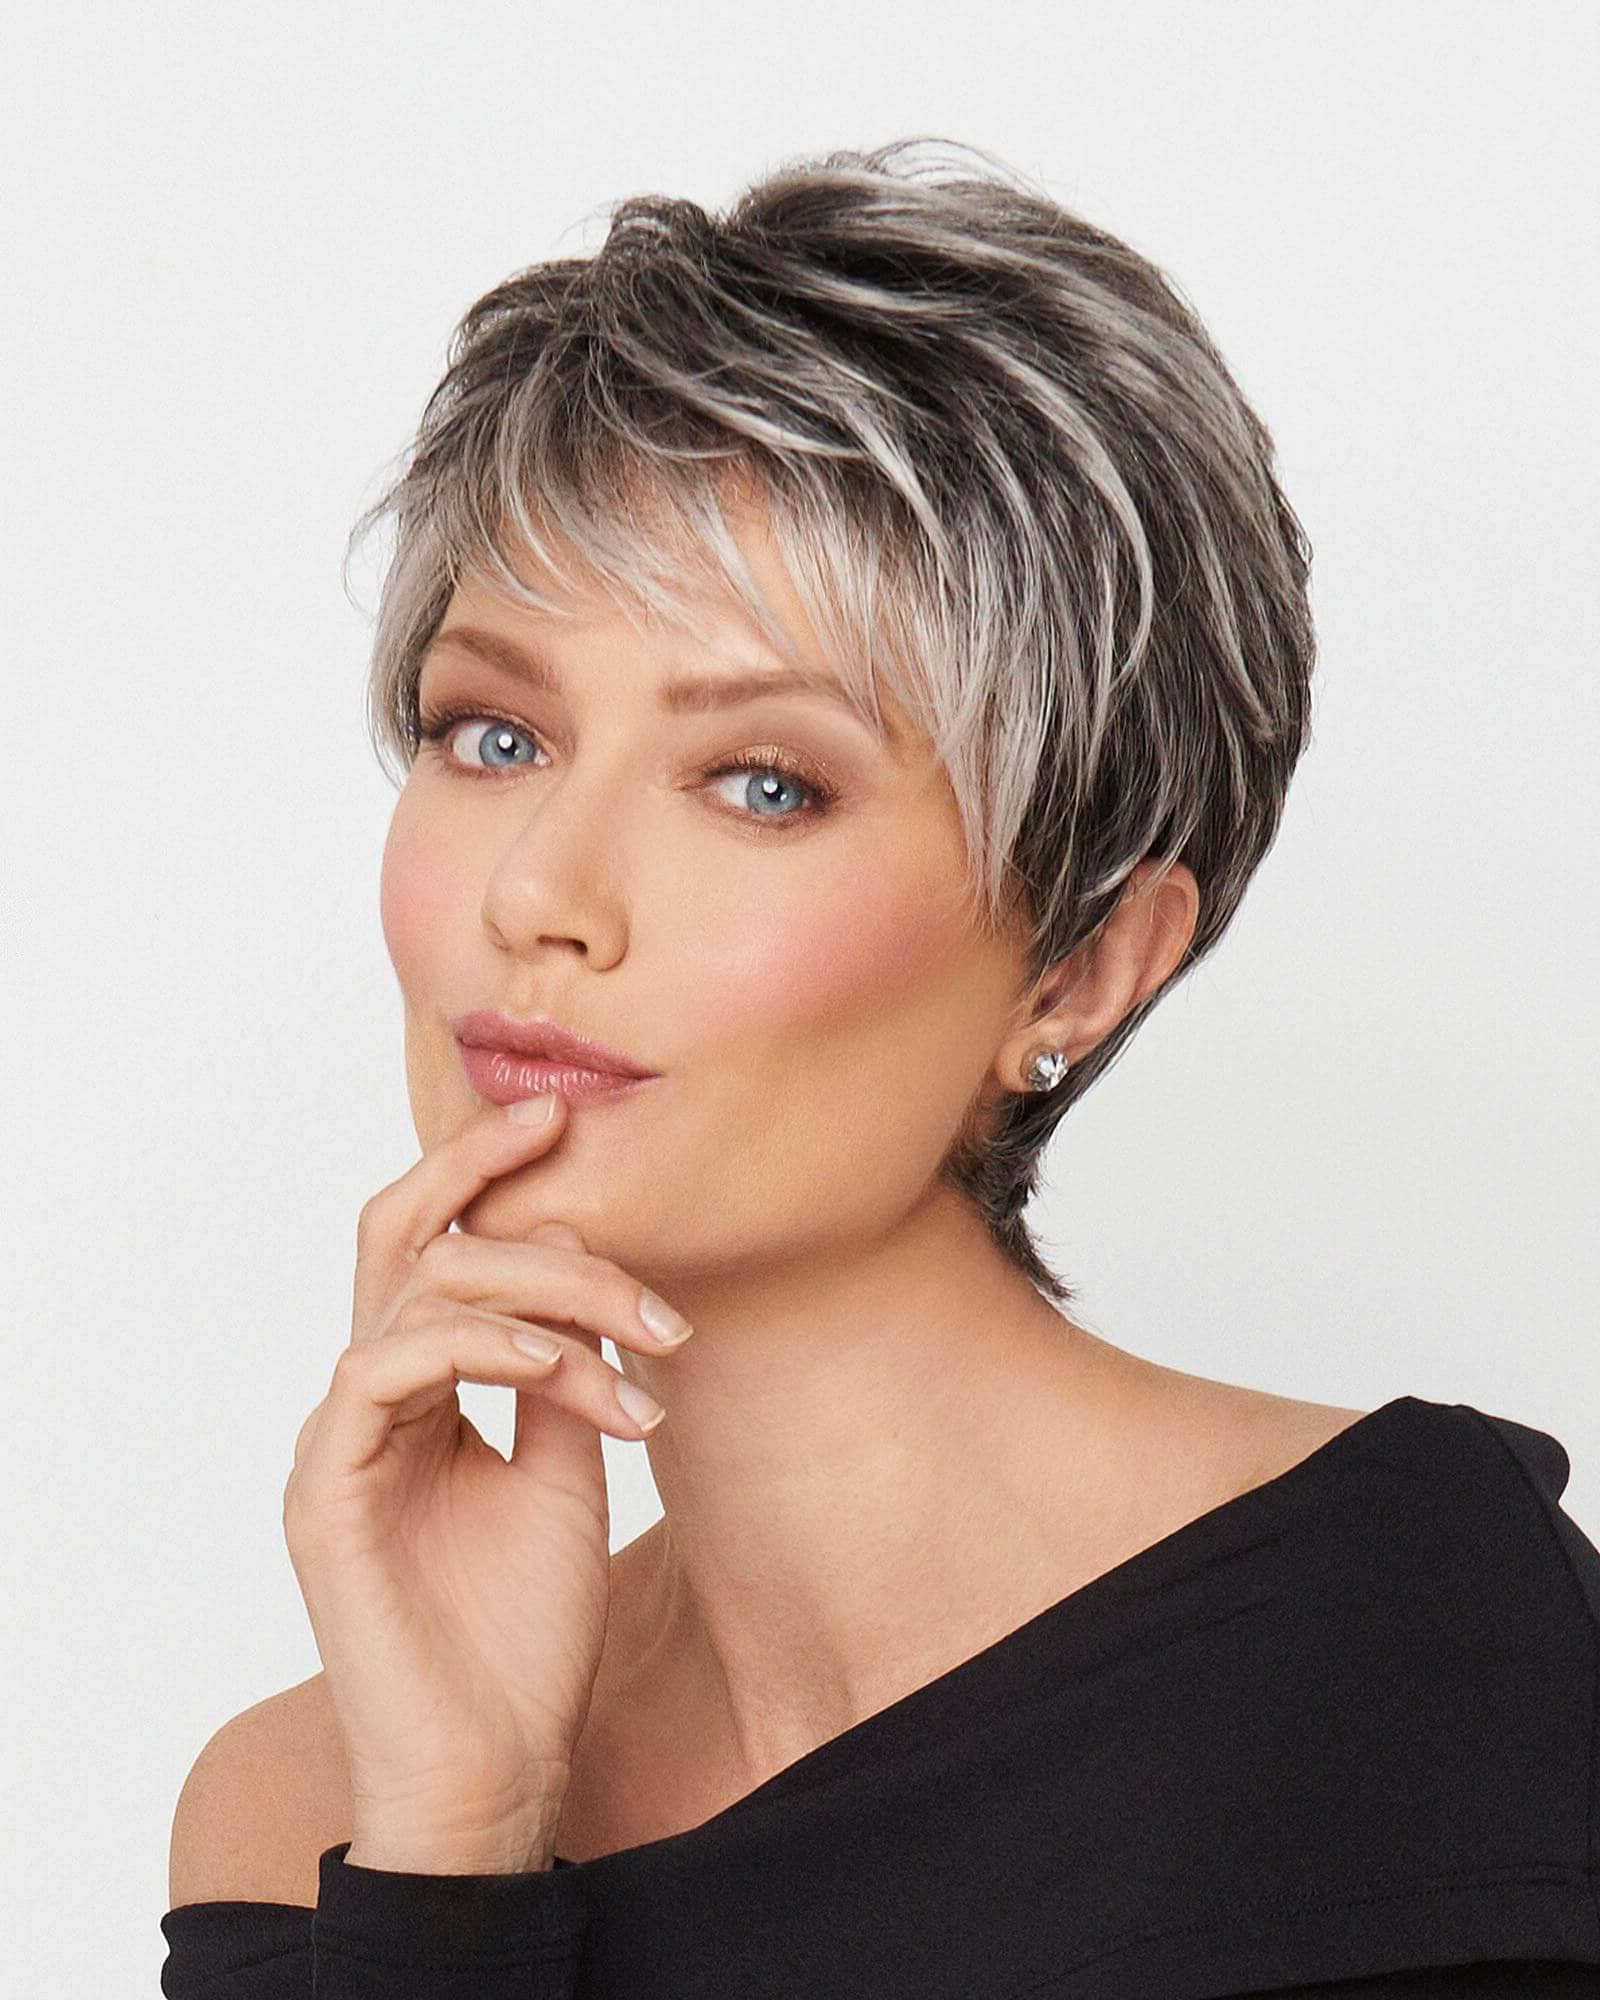 50 Pixie Haircuts You'll See Trending In 2019 Pertaining To Vintage Pixie Haircuts (View 6 of 20)